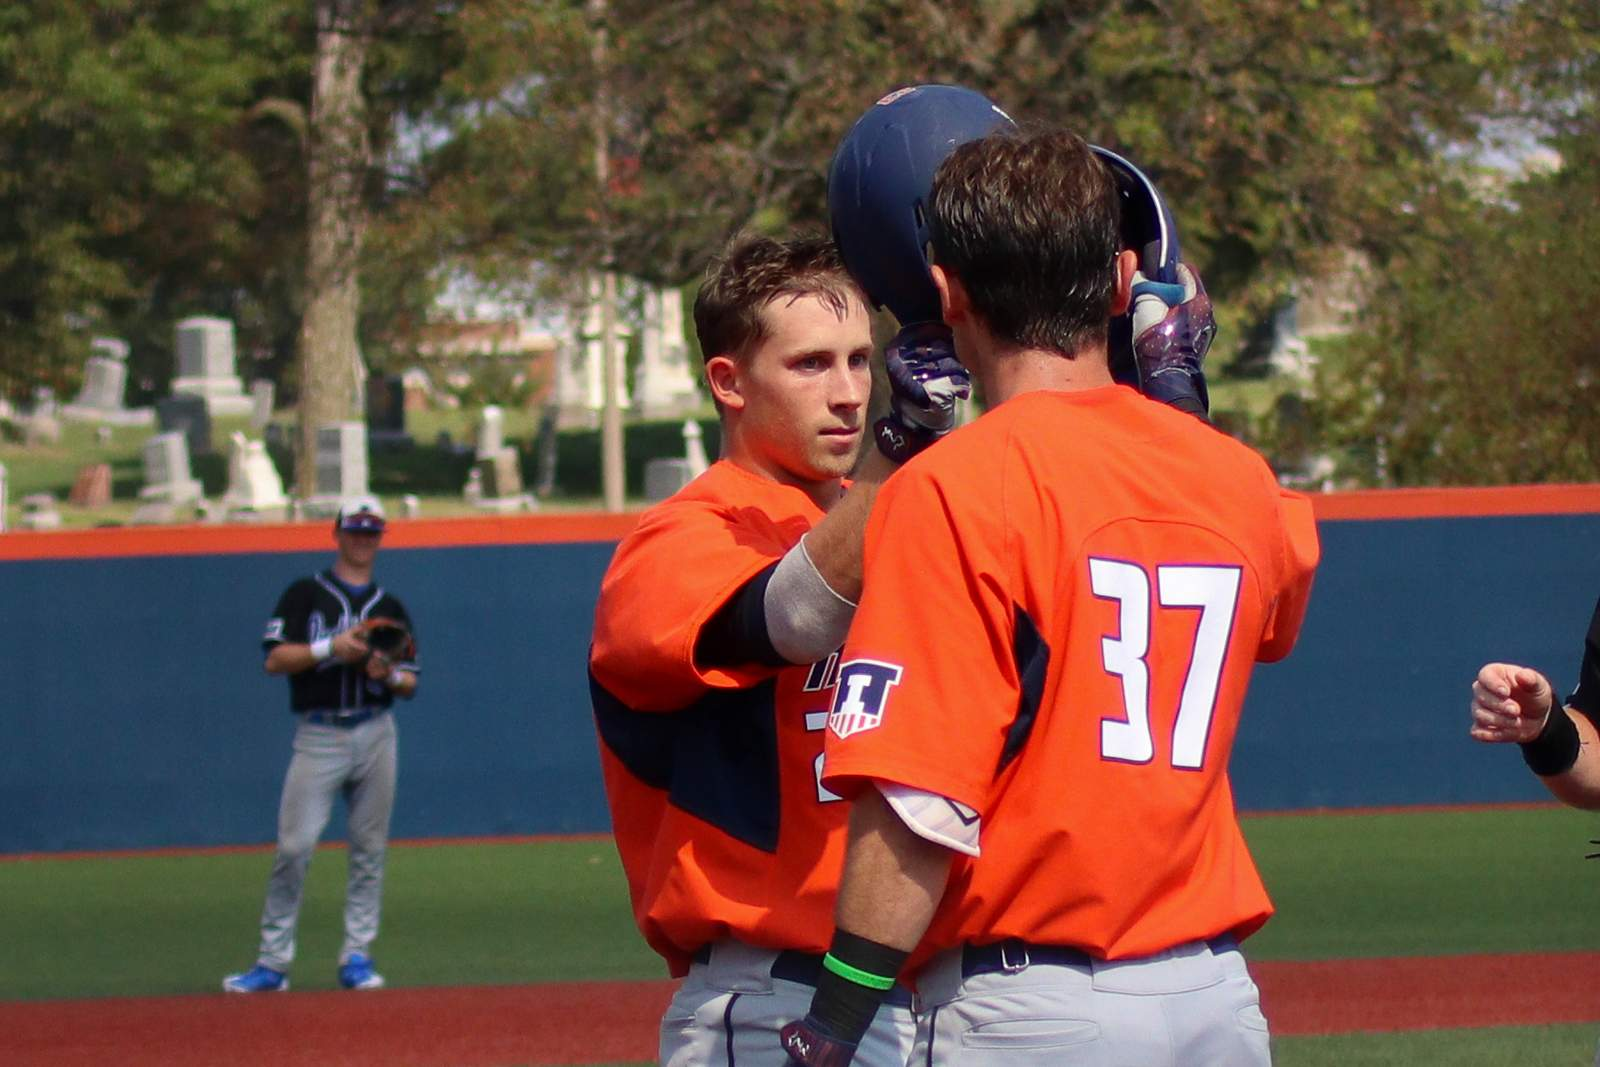 Illinois baseball rally against Sycamores falls short, 13-10